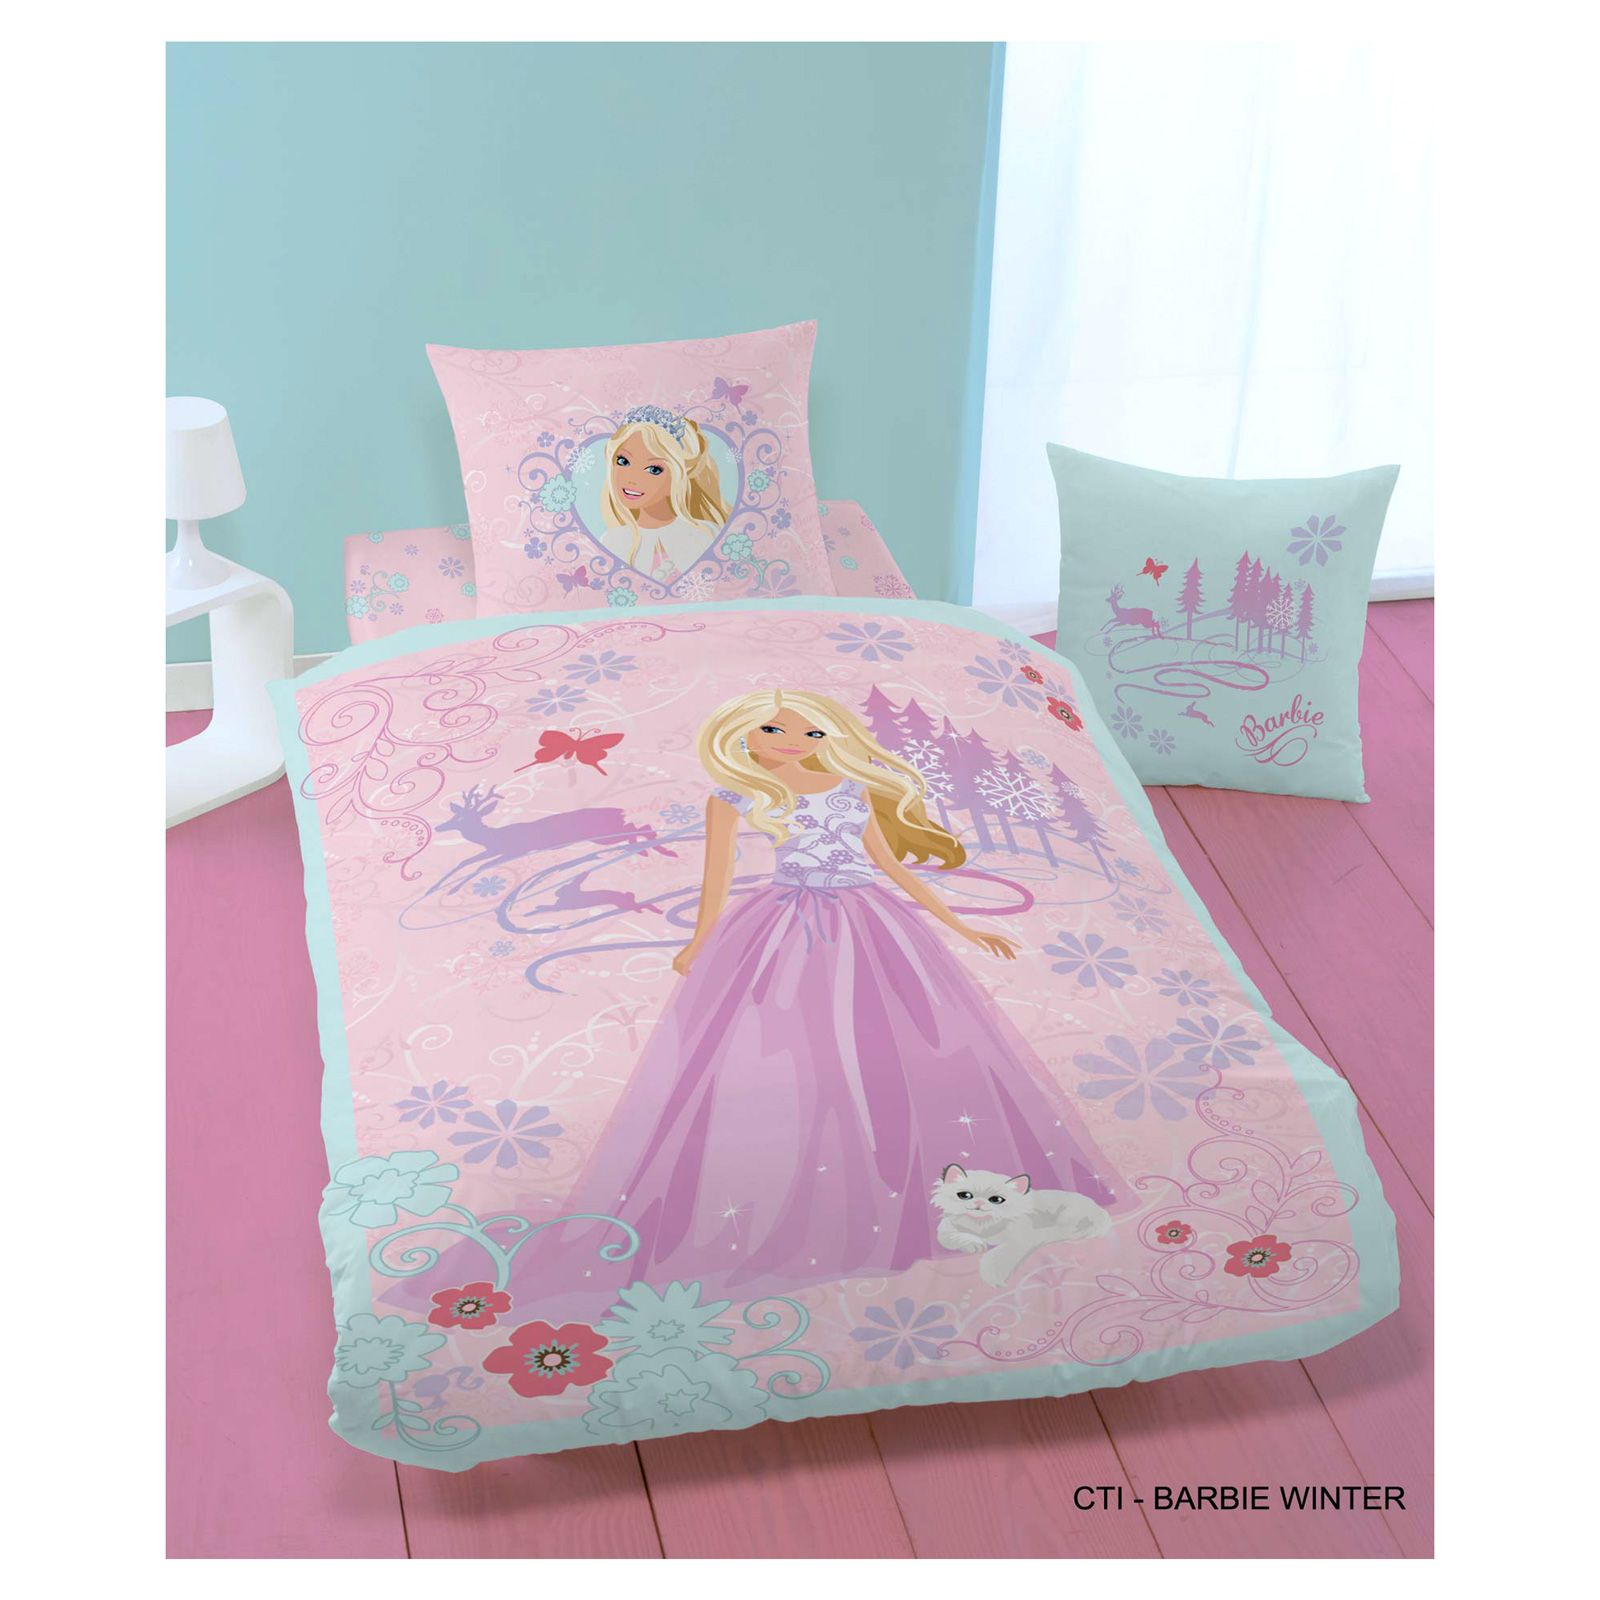 barbie parure de lit barbie winter 140x200 rose brandalley. Black Bedroom Furniture Sets. Home Design Ideas